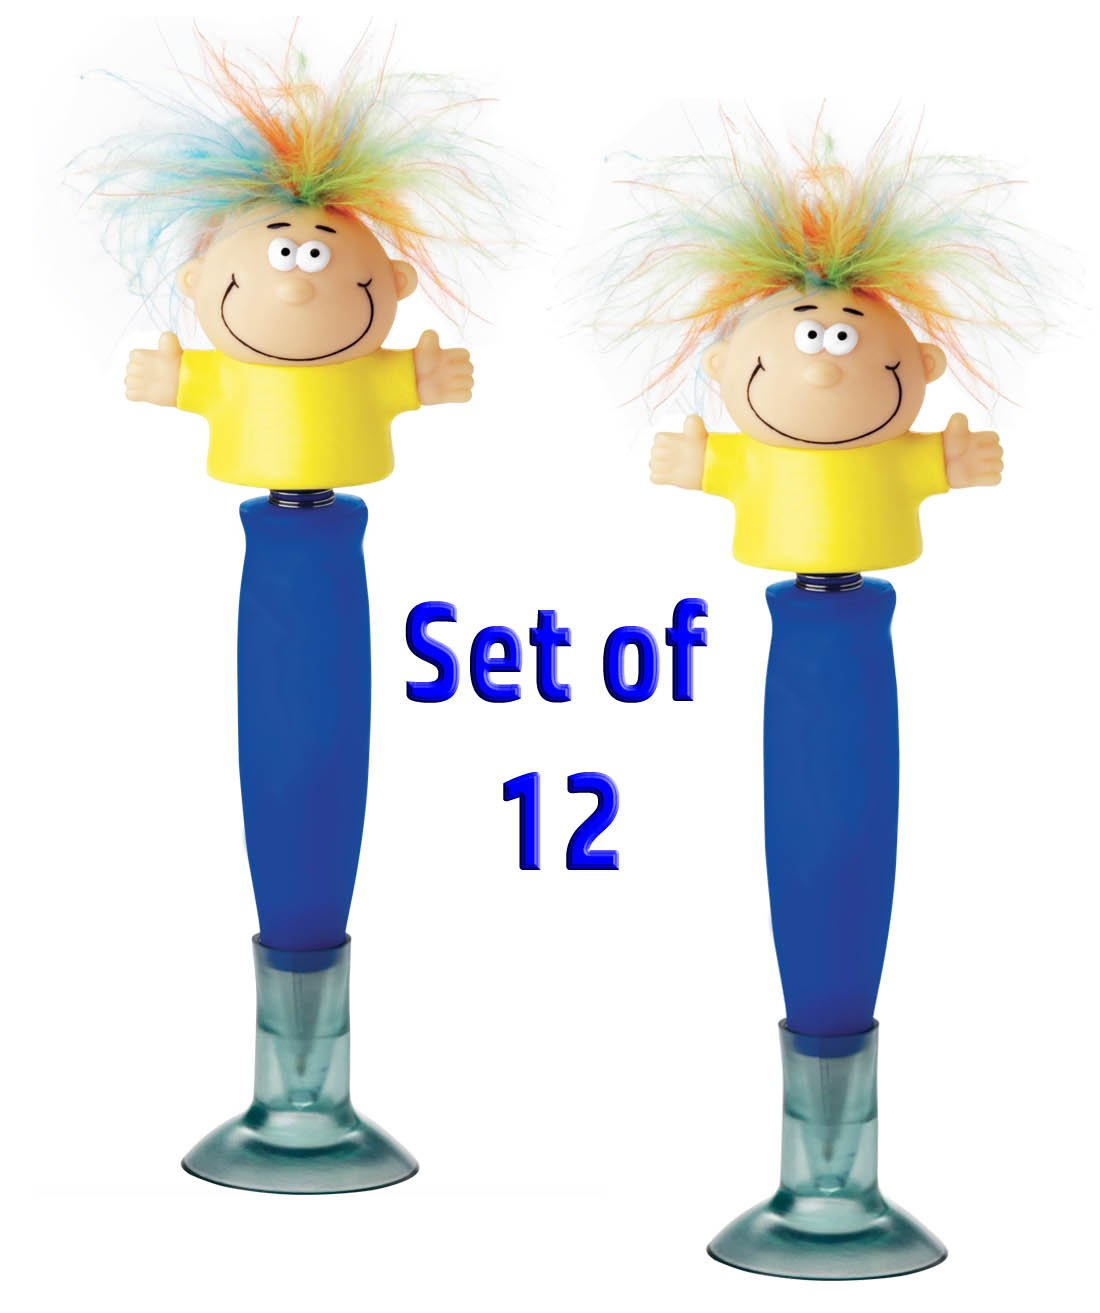 Set of 12 Party Favors Talking Bobble Body Pen With Holder